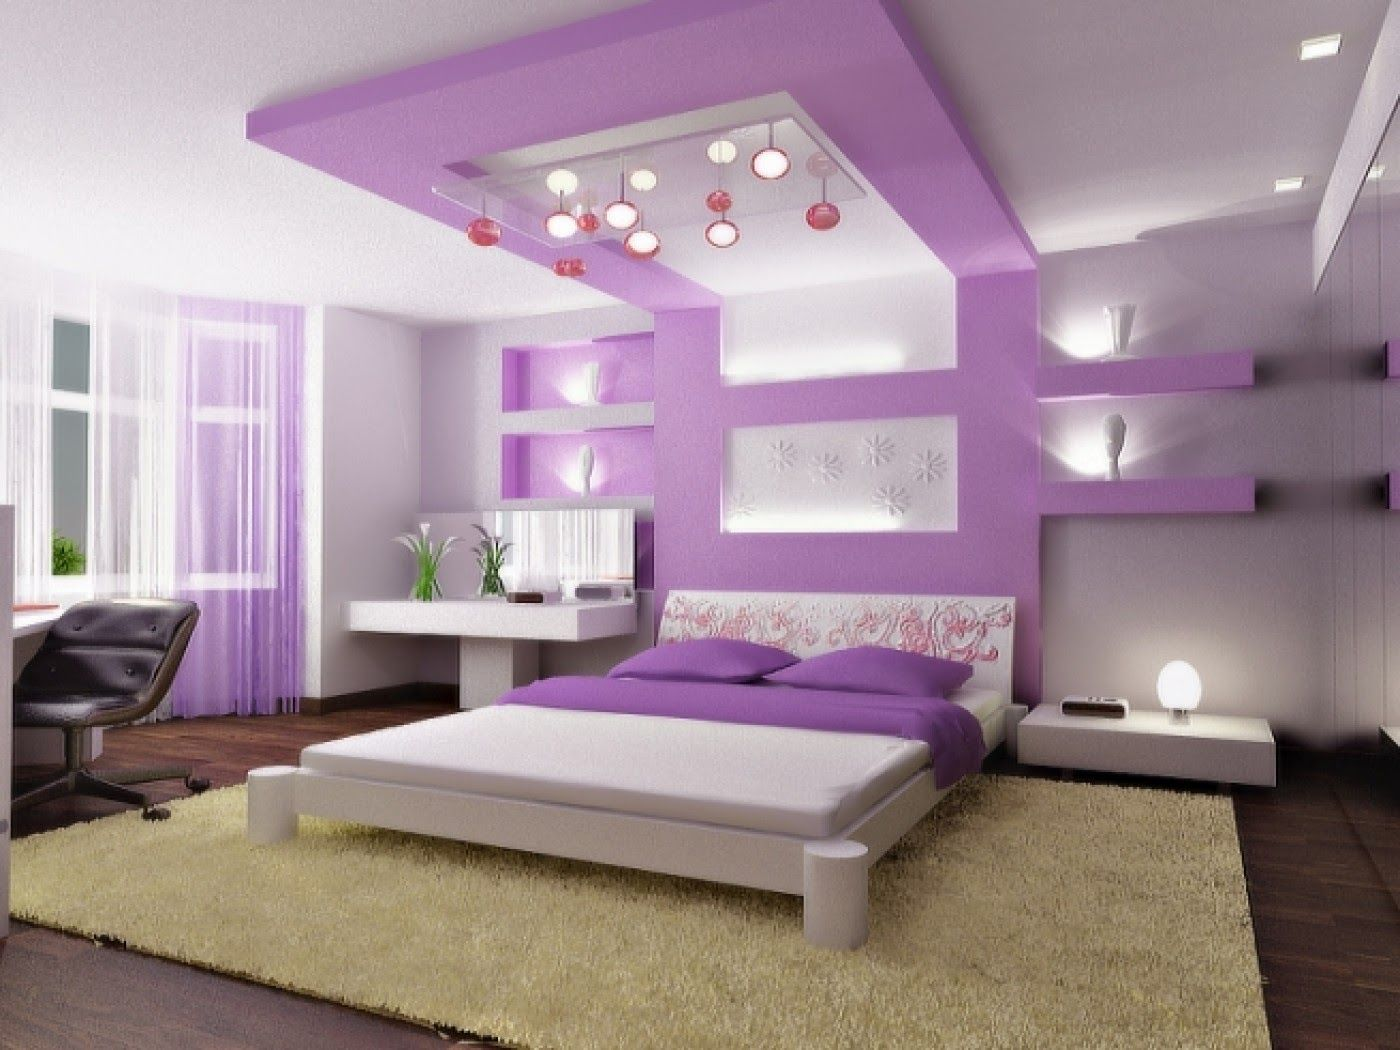 Eye Catching Bedroom Ceiling Designs That Will Make You Say Wow. Eye Catching Bedroom Ceiling Designs That Will Make You Say Wow